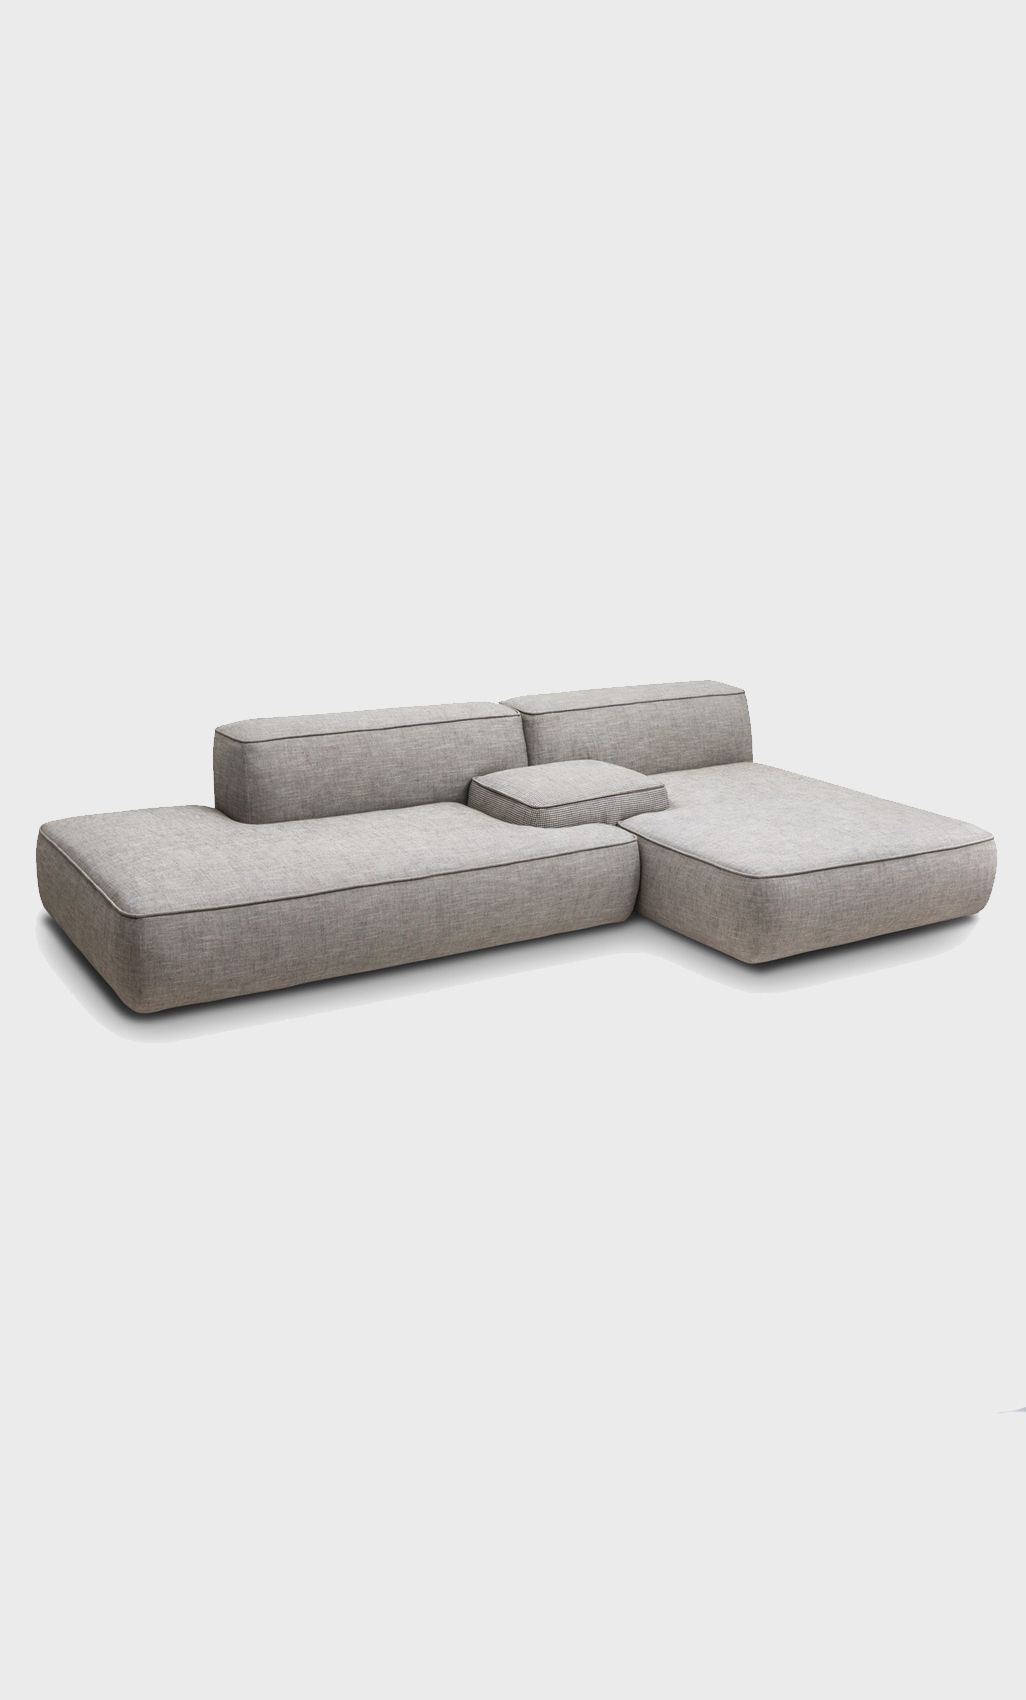 Modular Sofa: No Legs Or Really Small Low Legs | Furniture 2 Within Low Sofas (Image 7 of 10)